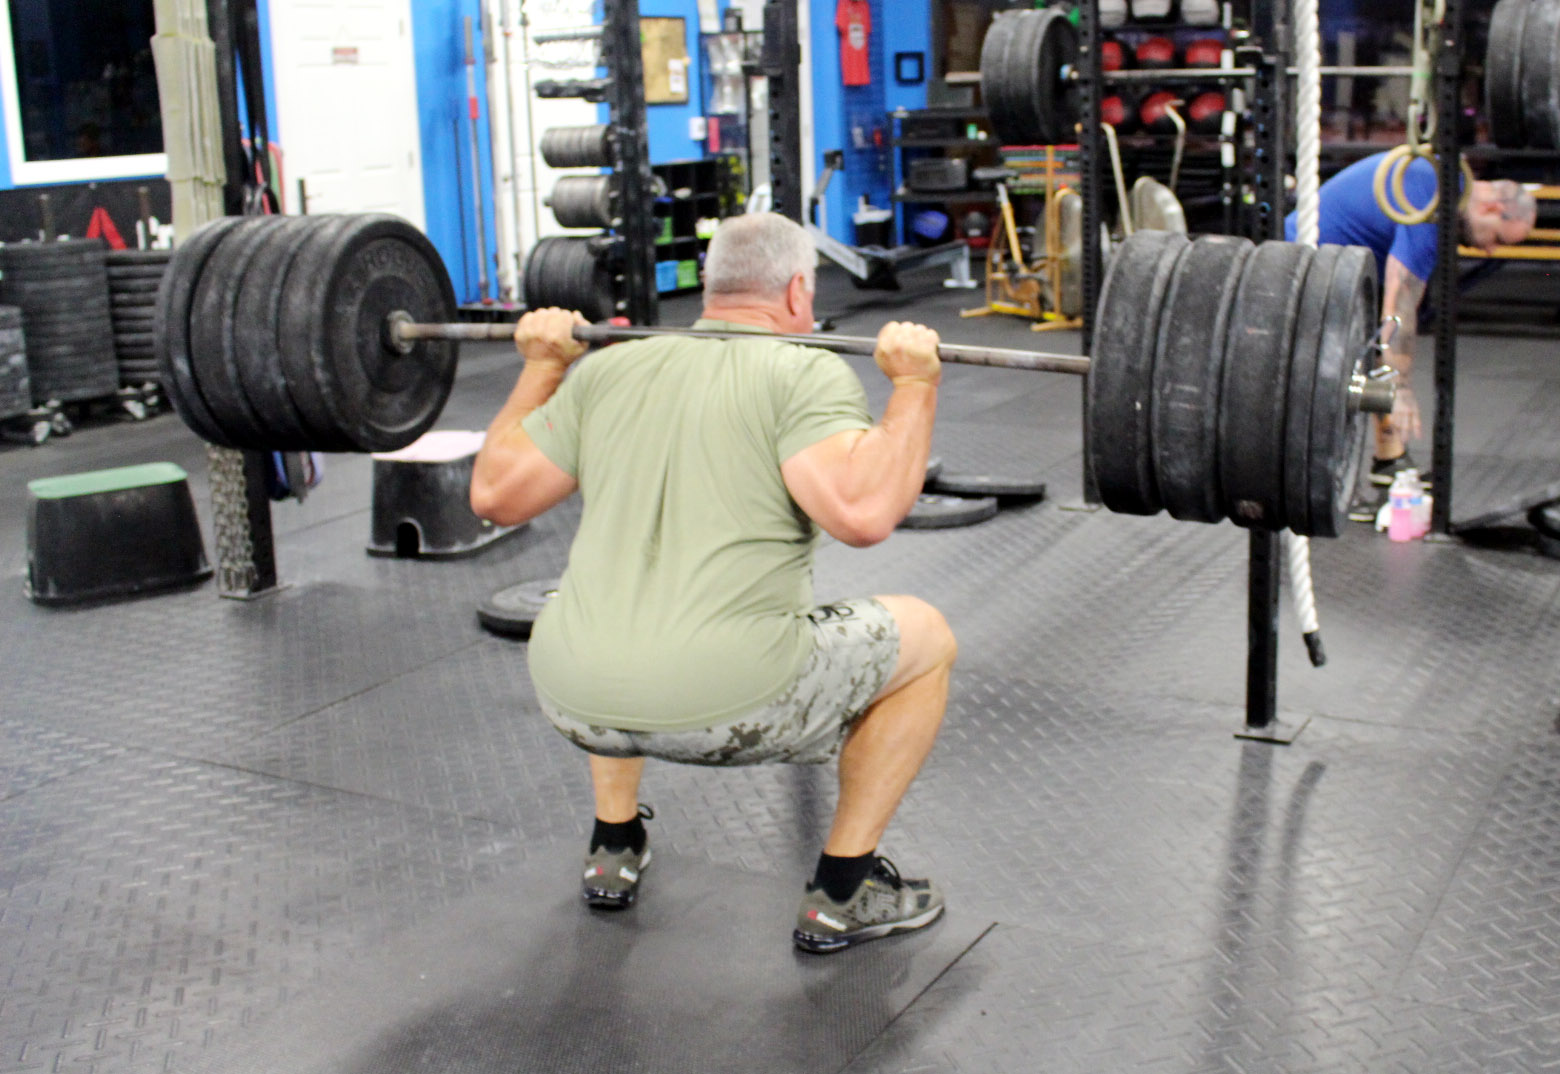 Ward with 355 lbs Back Squat at 50+ years young!